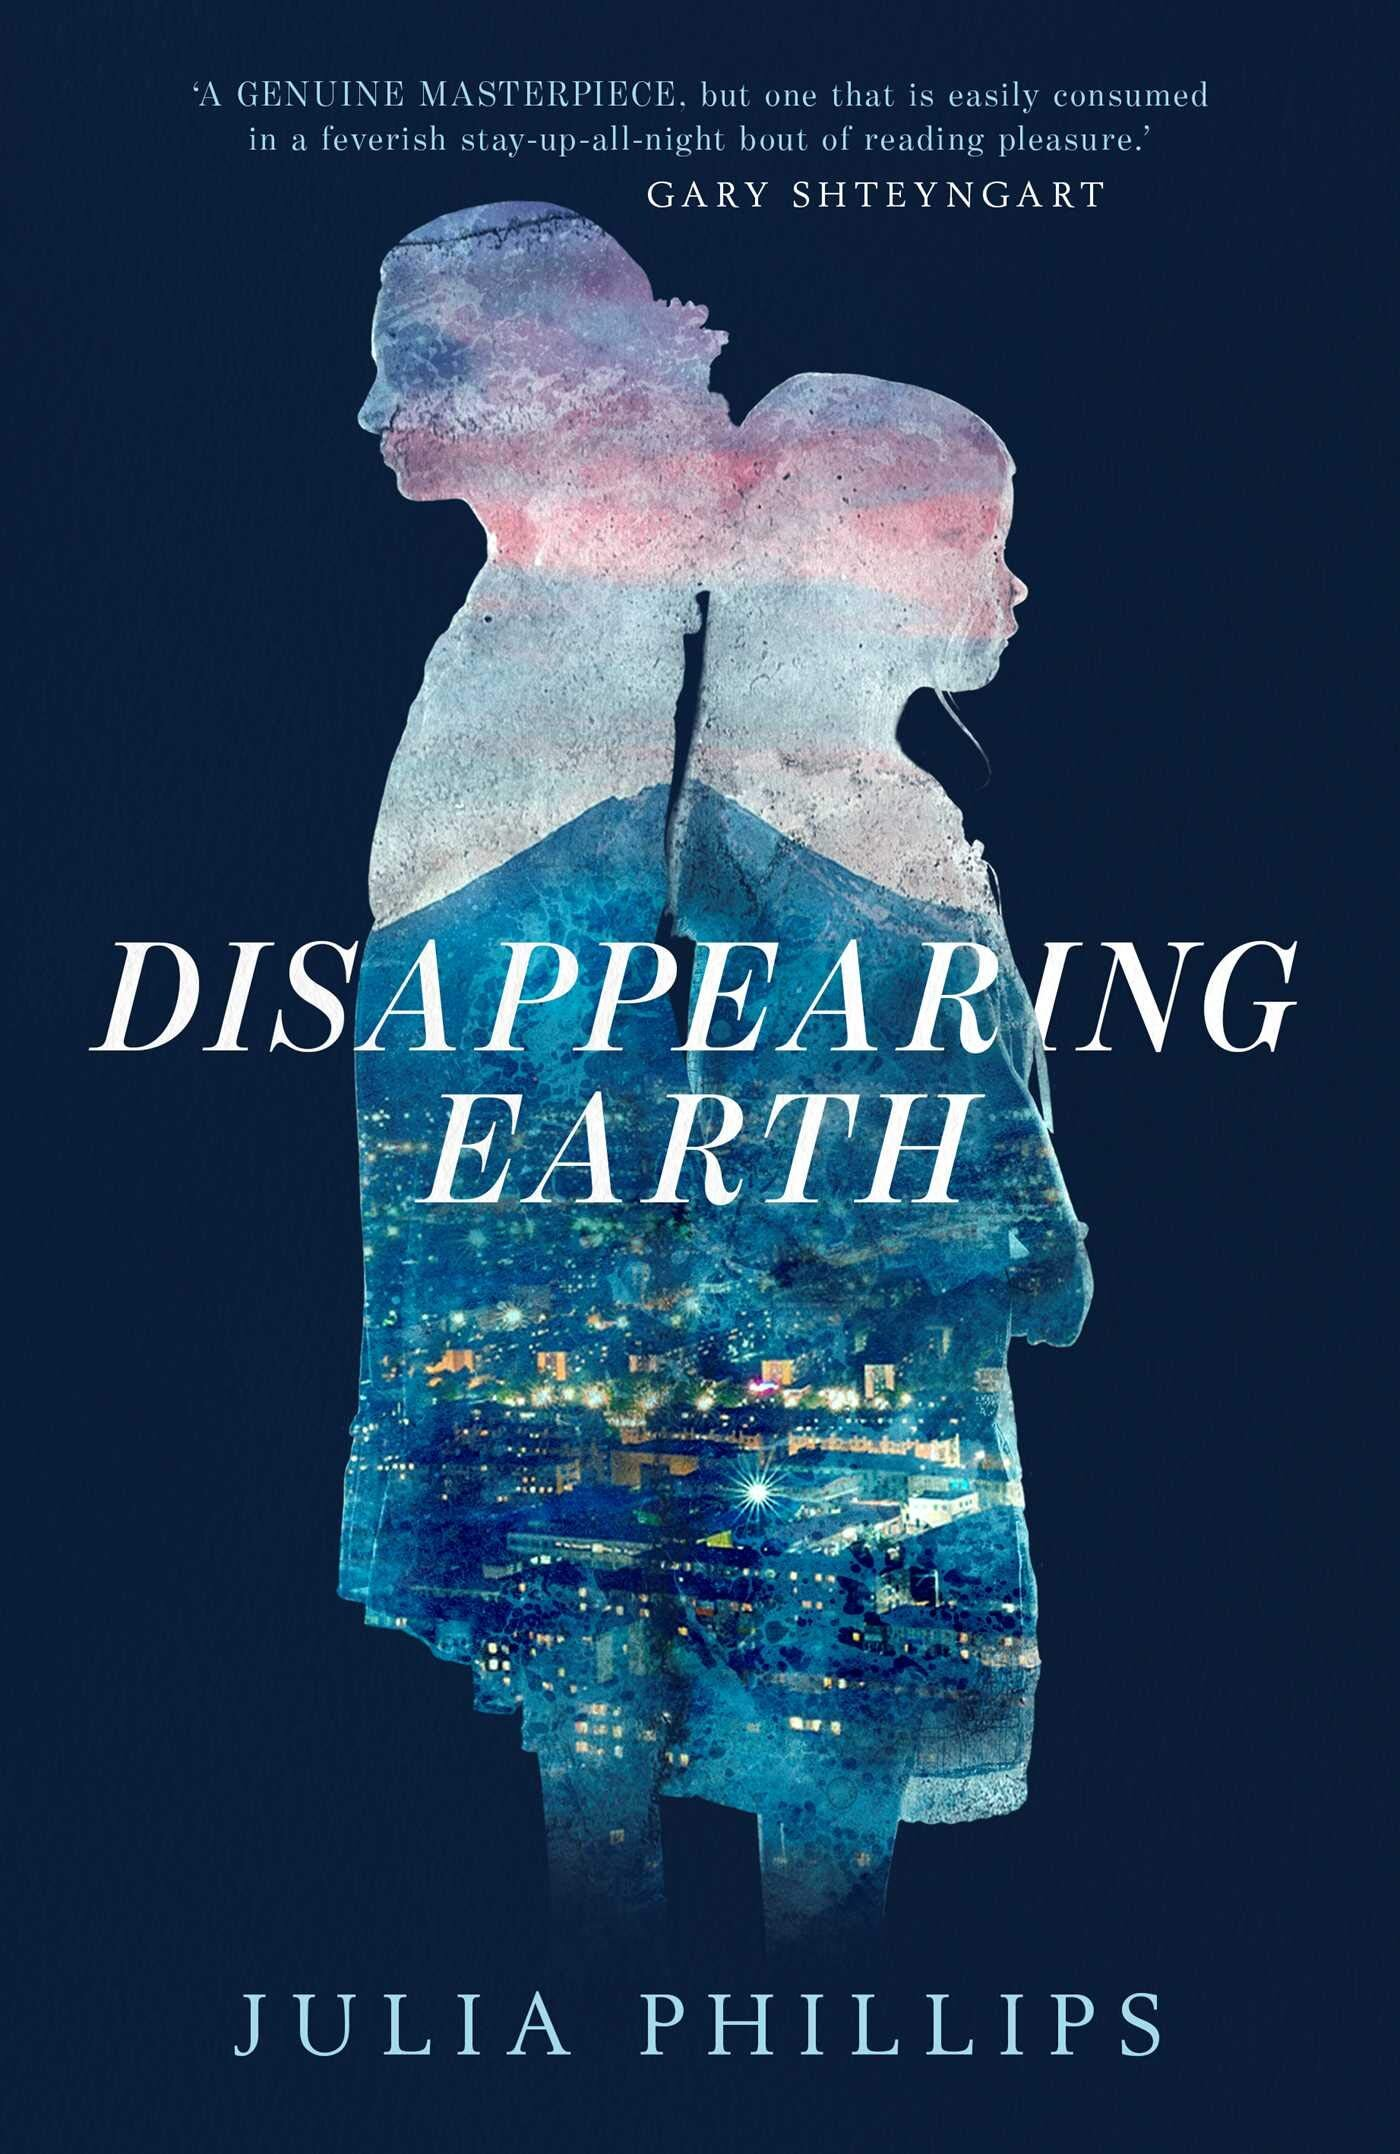 disappearing earth.jpg